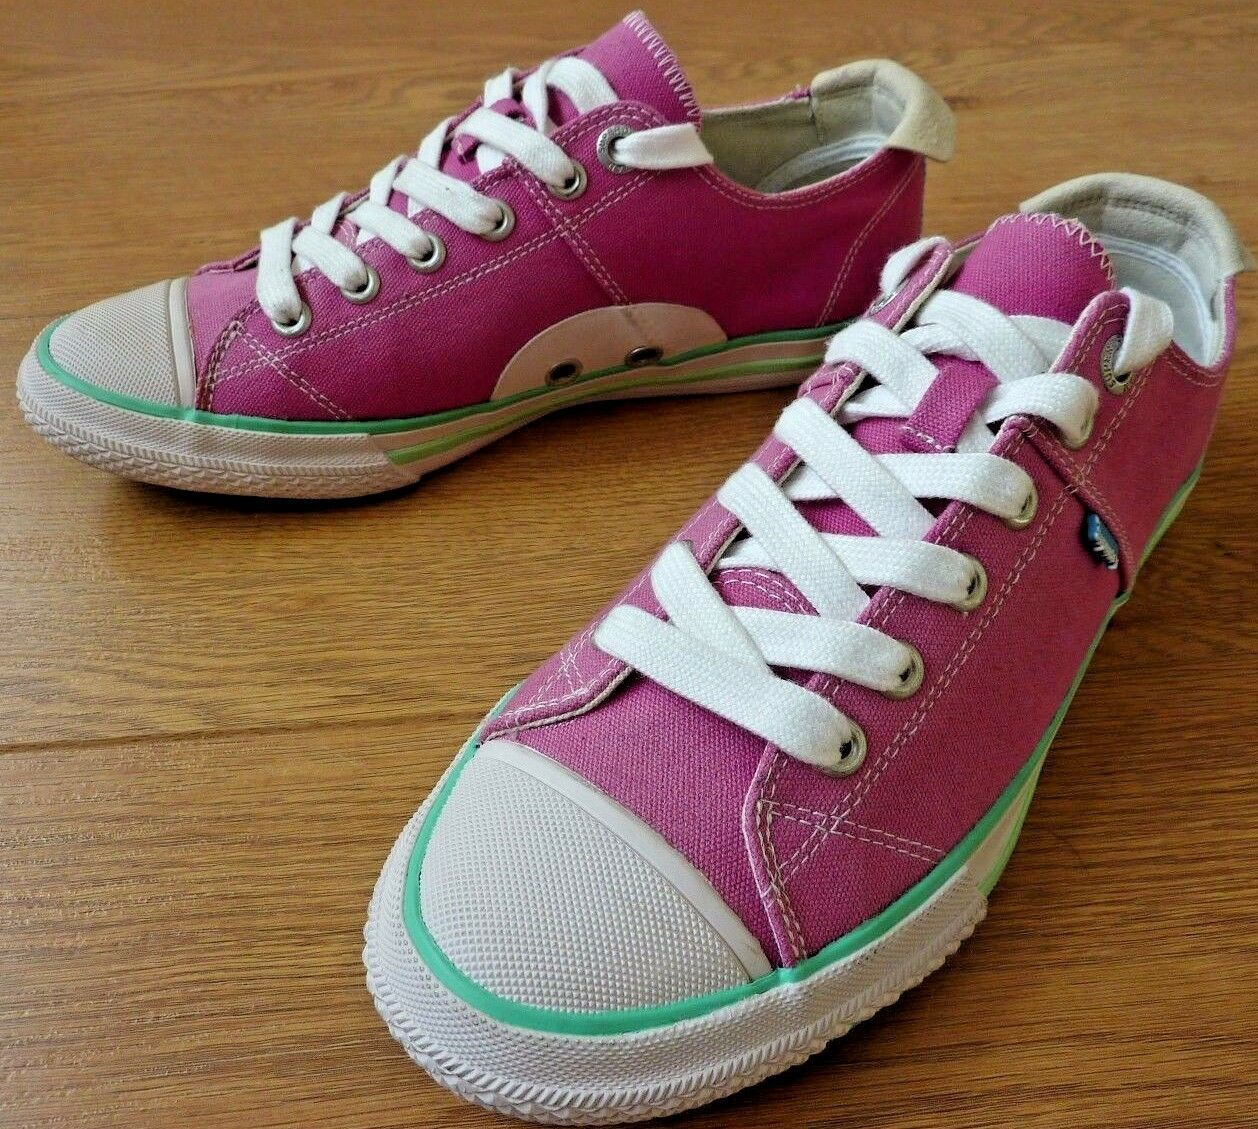 SuperDry Japan Super Series Low Lace up Pink Trainers shoes Size US 8